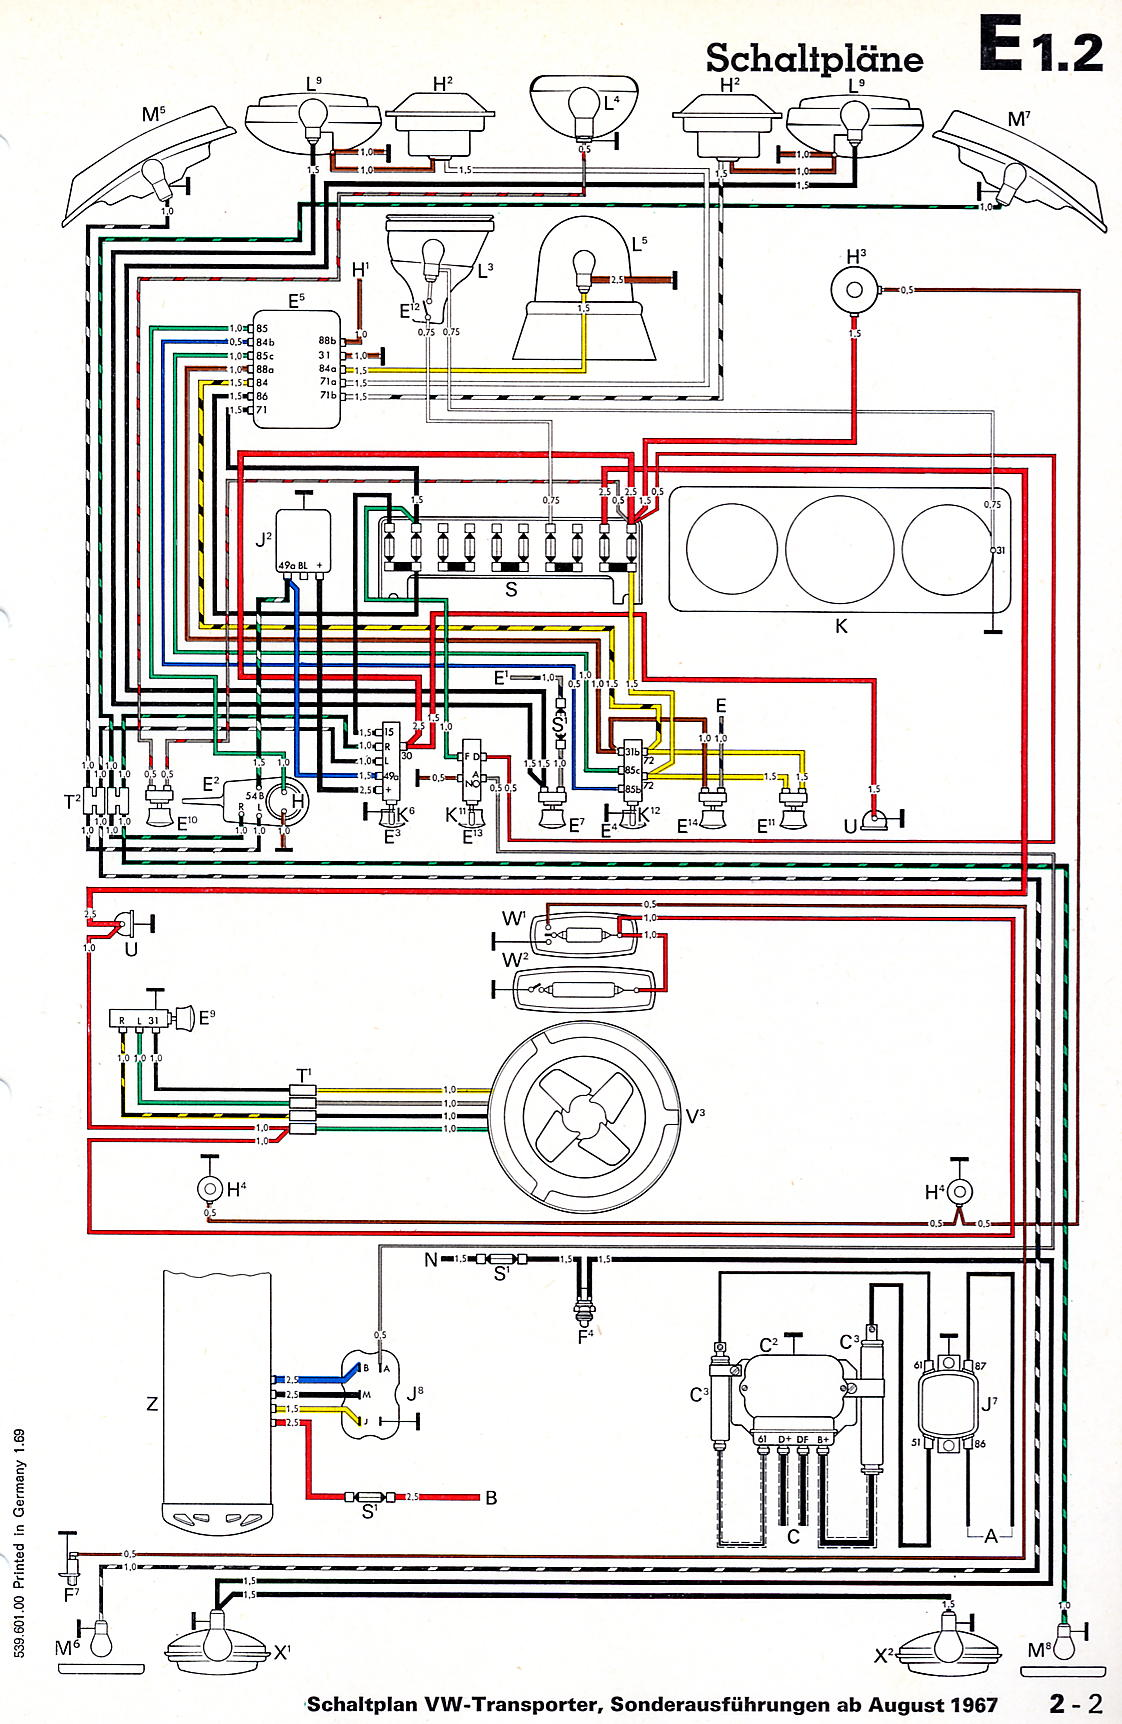 Transporter_from_August_1967_aditional_items vintagebus com vw bus (and other) wiring diagrams vw t5 rear light wiring diagram at reclaimingppi.co